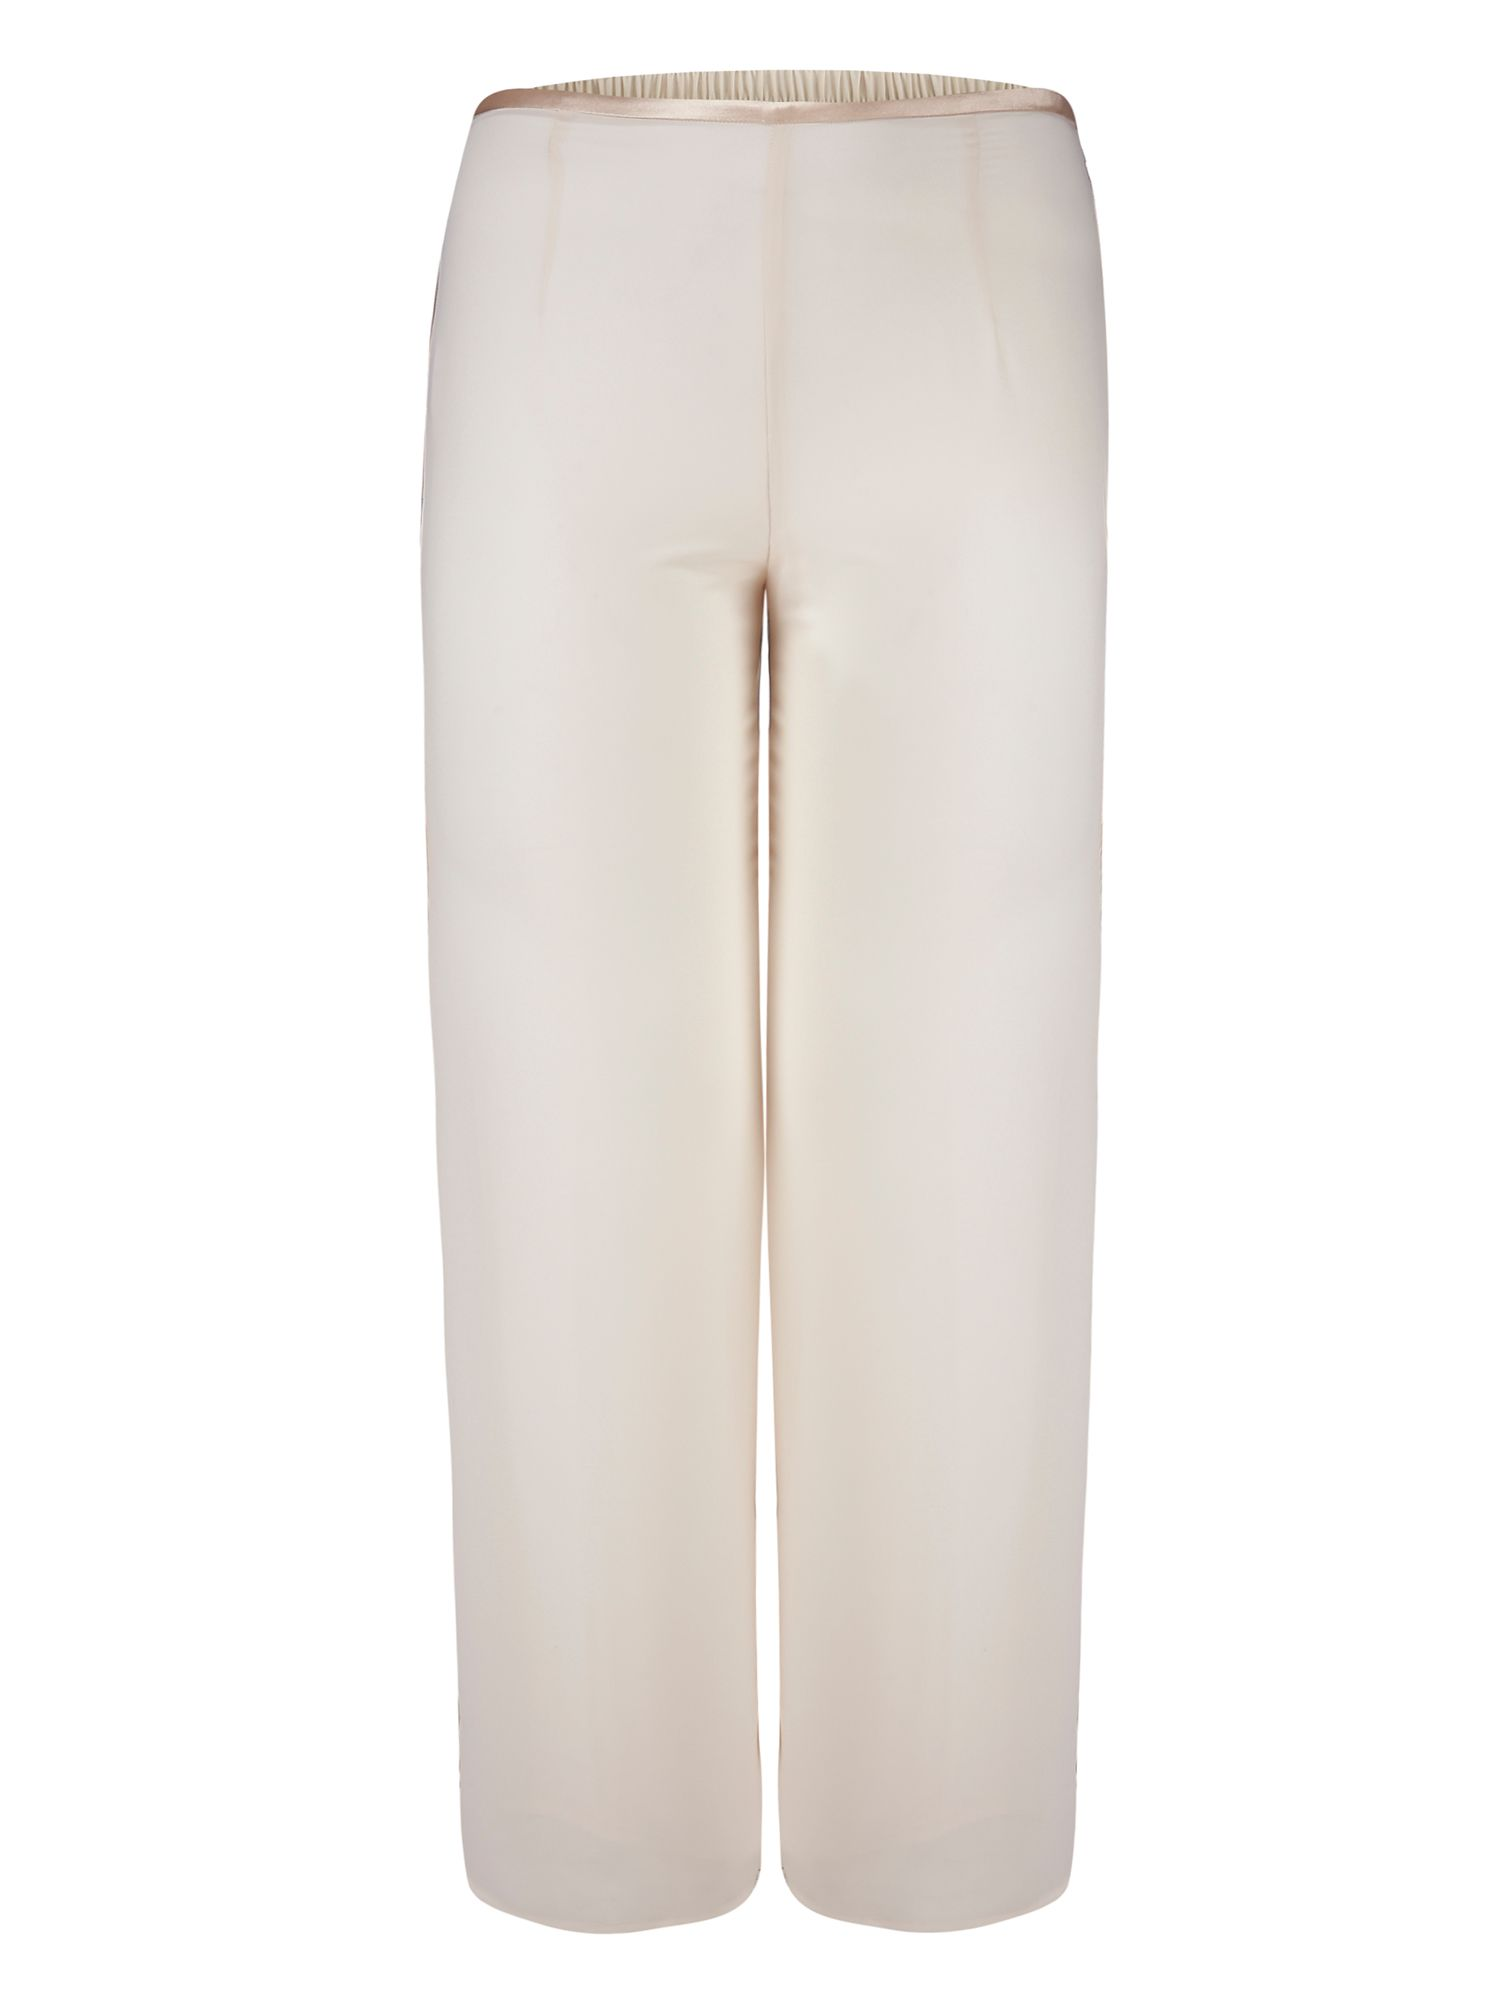 Satin Trim Chiffon Trouser